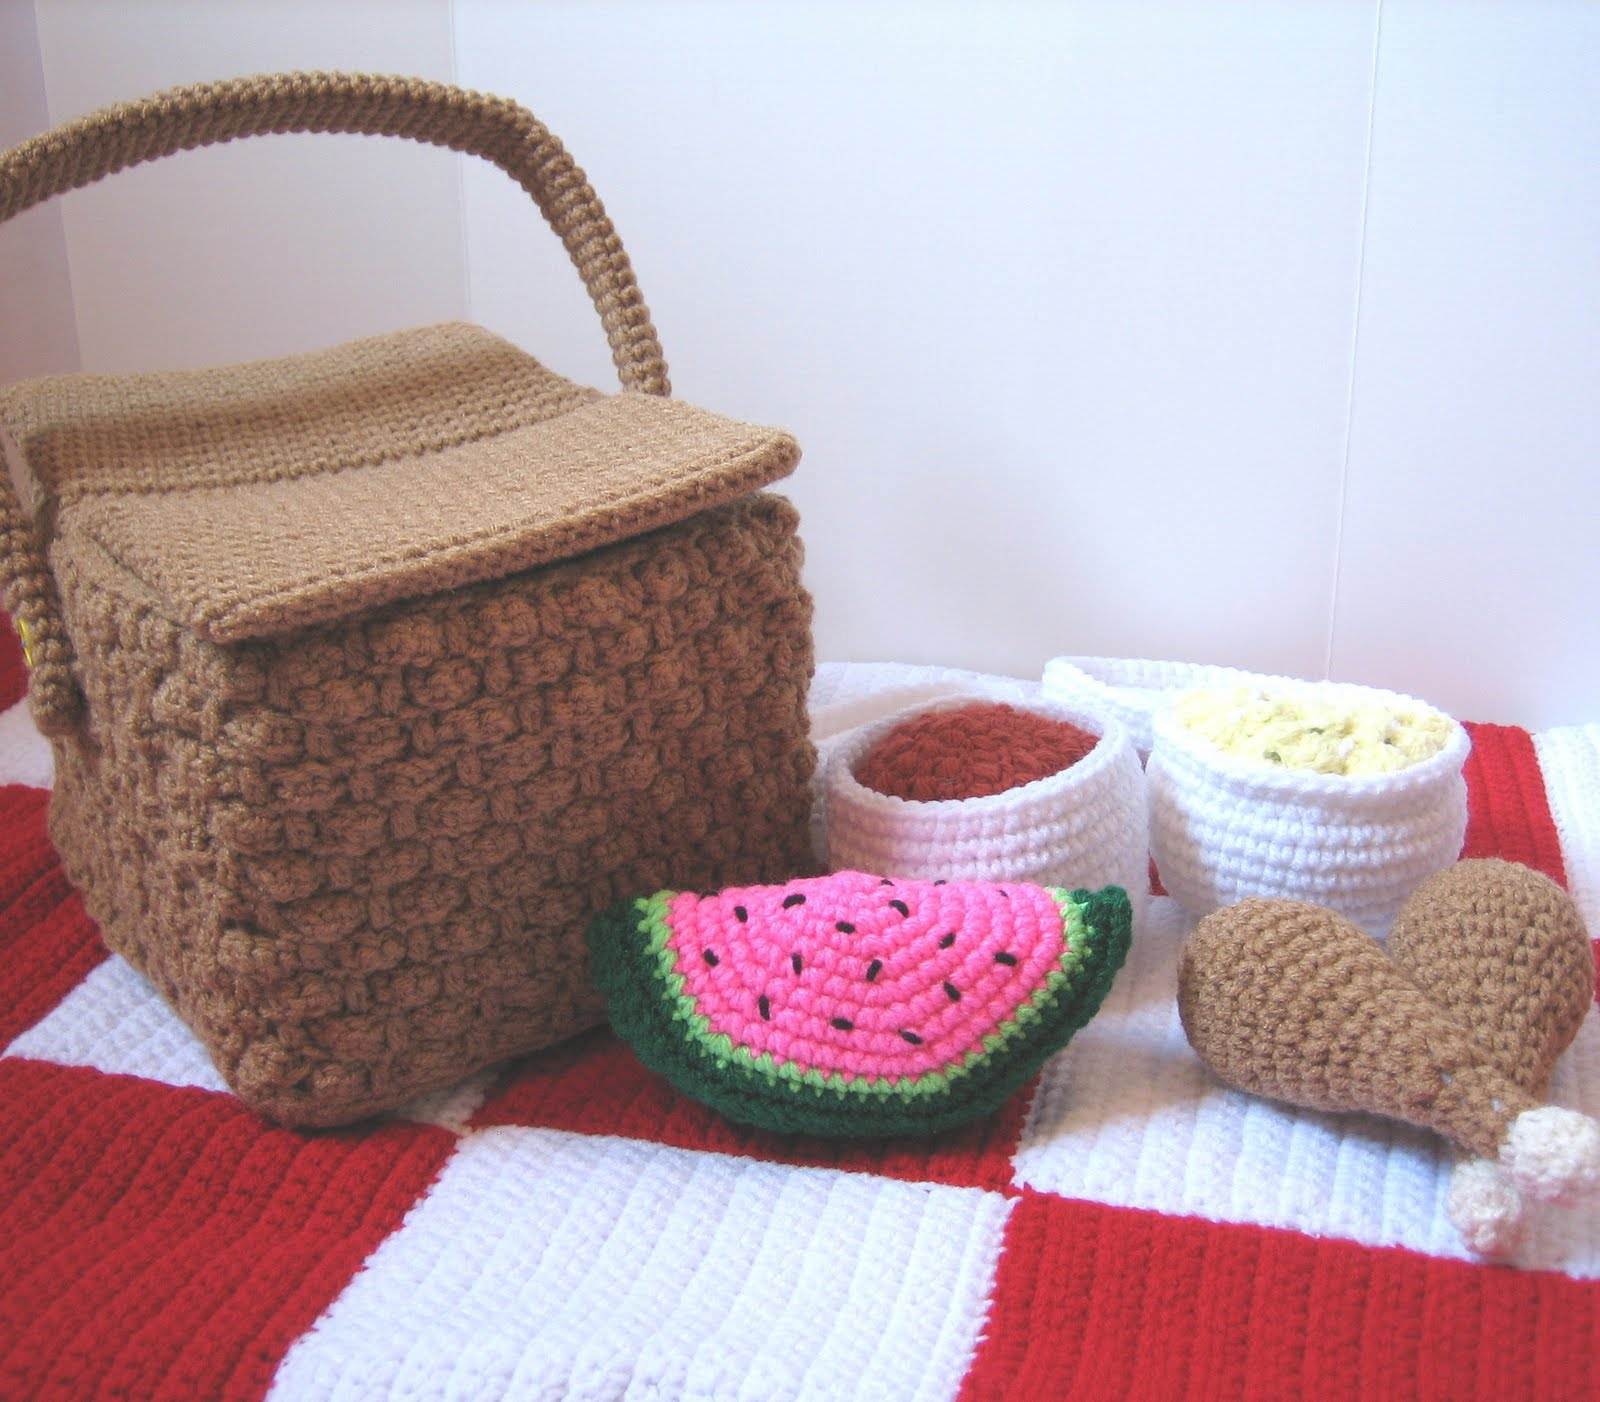 CROCHET N PLAY DESIGNS: New Crochet Pattern: Picnic